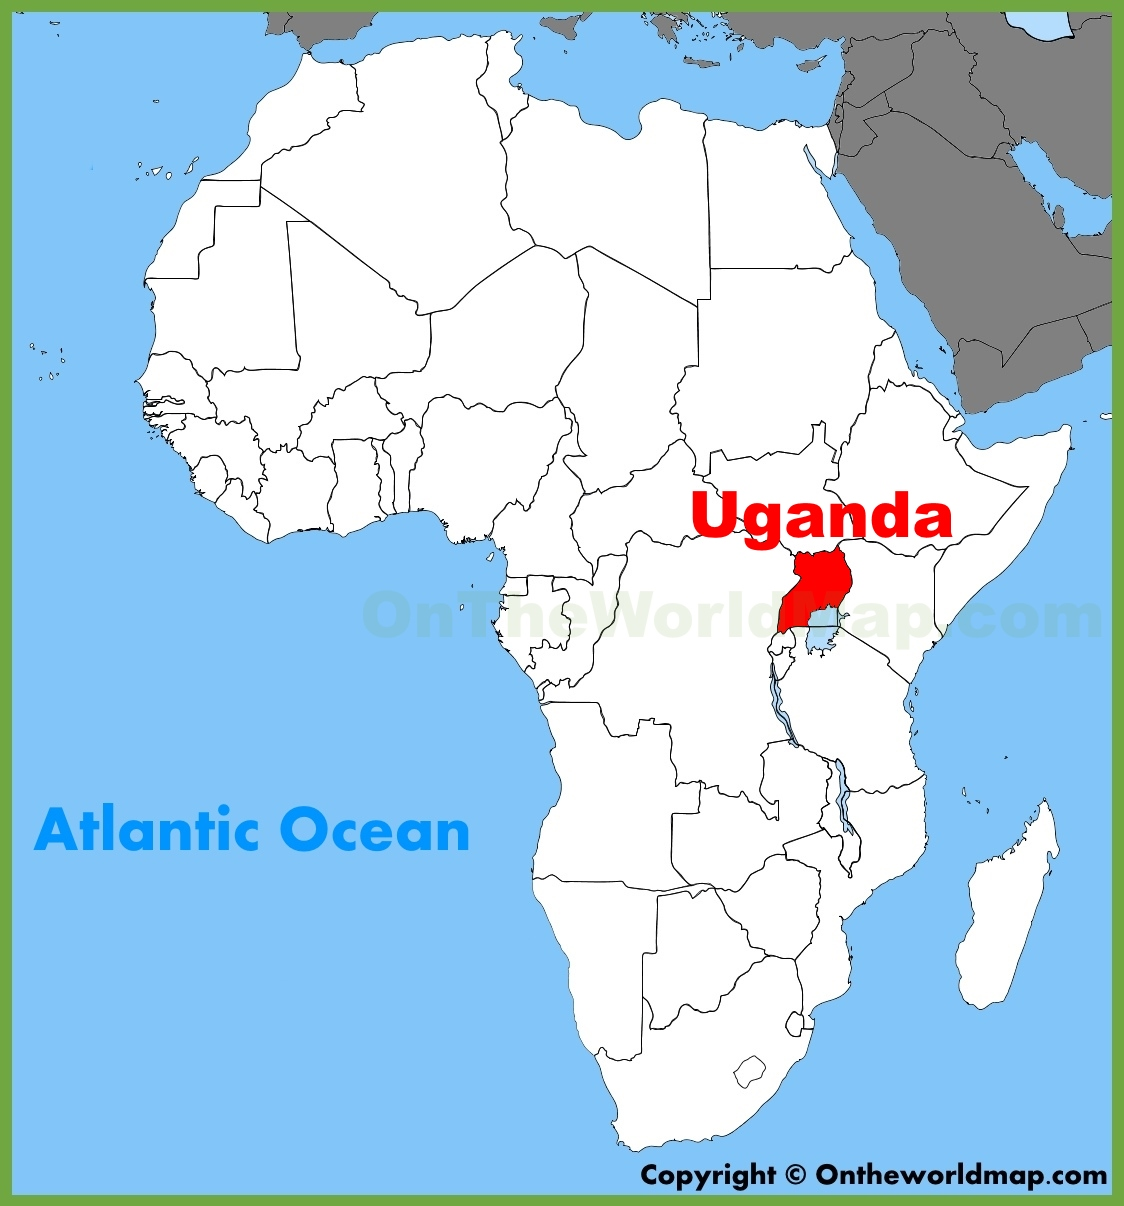 Where Is Uganda On A Map Of Africa Uganda location on the Africa map